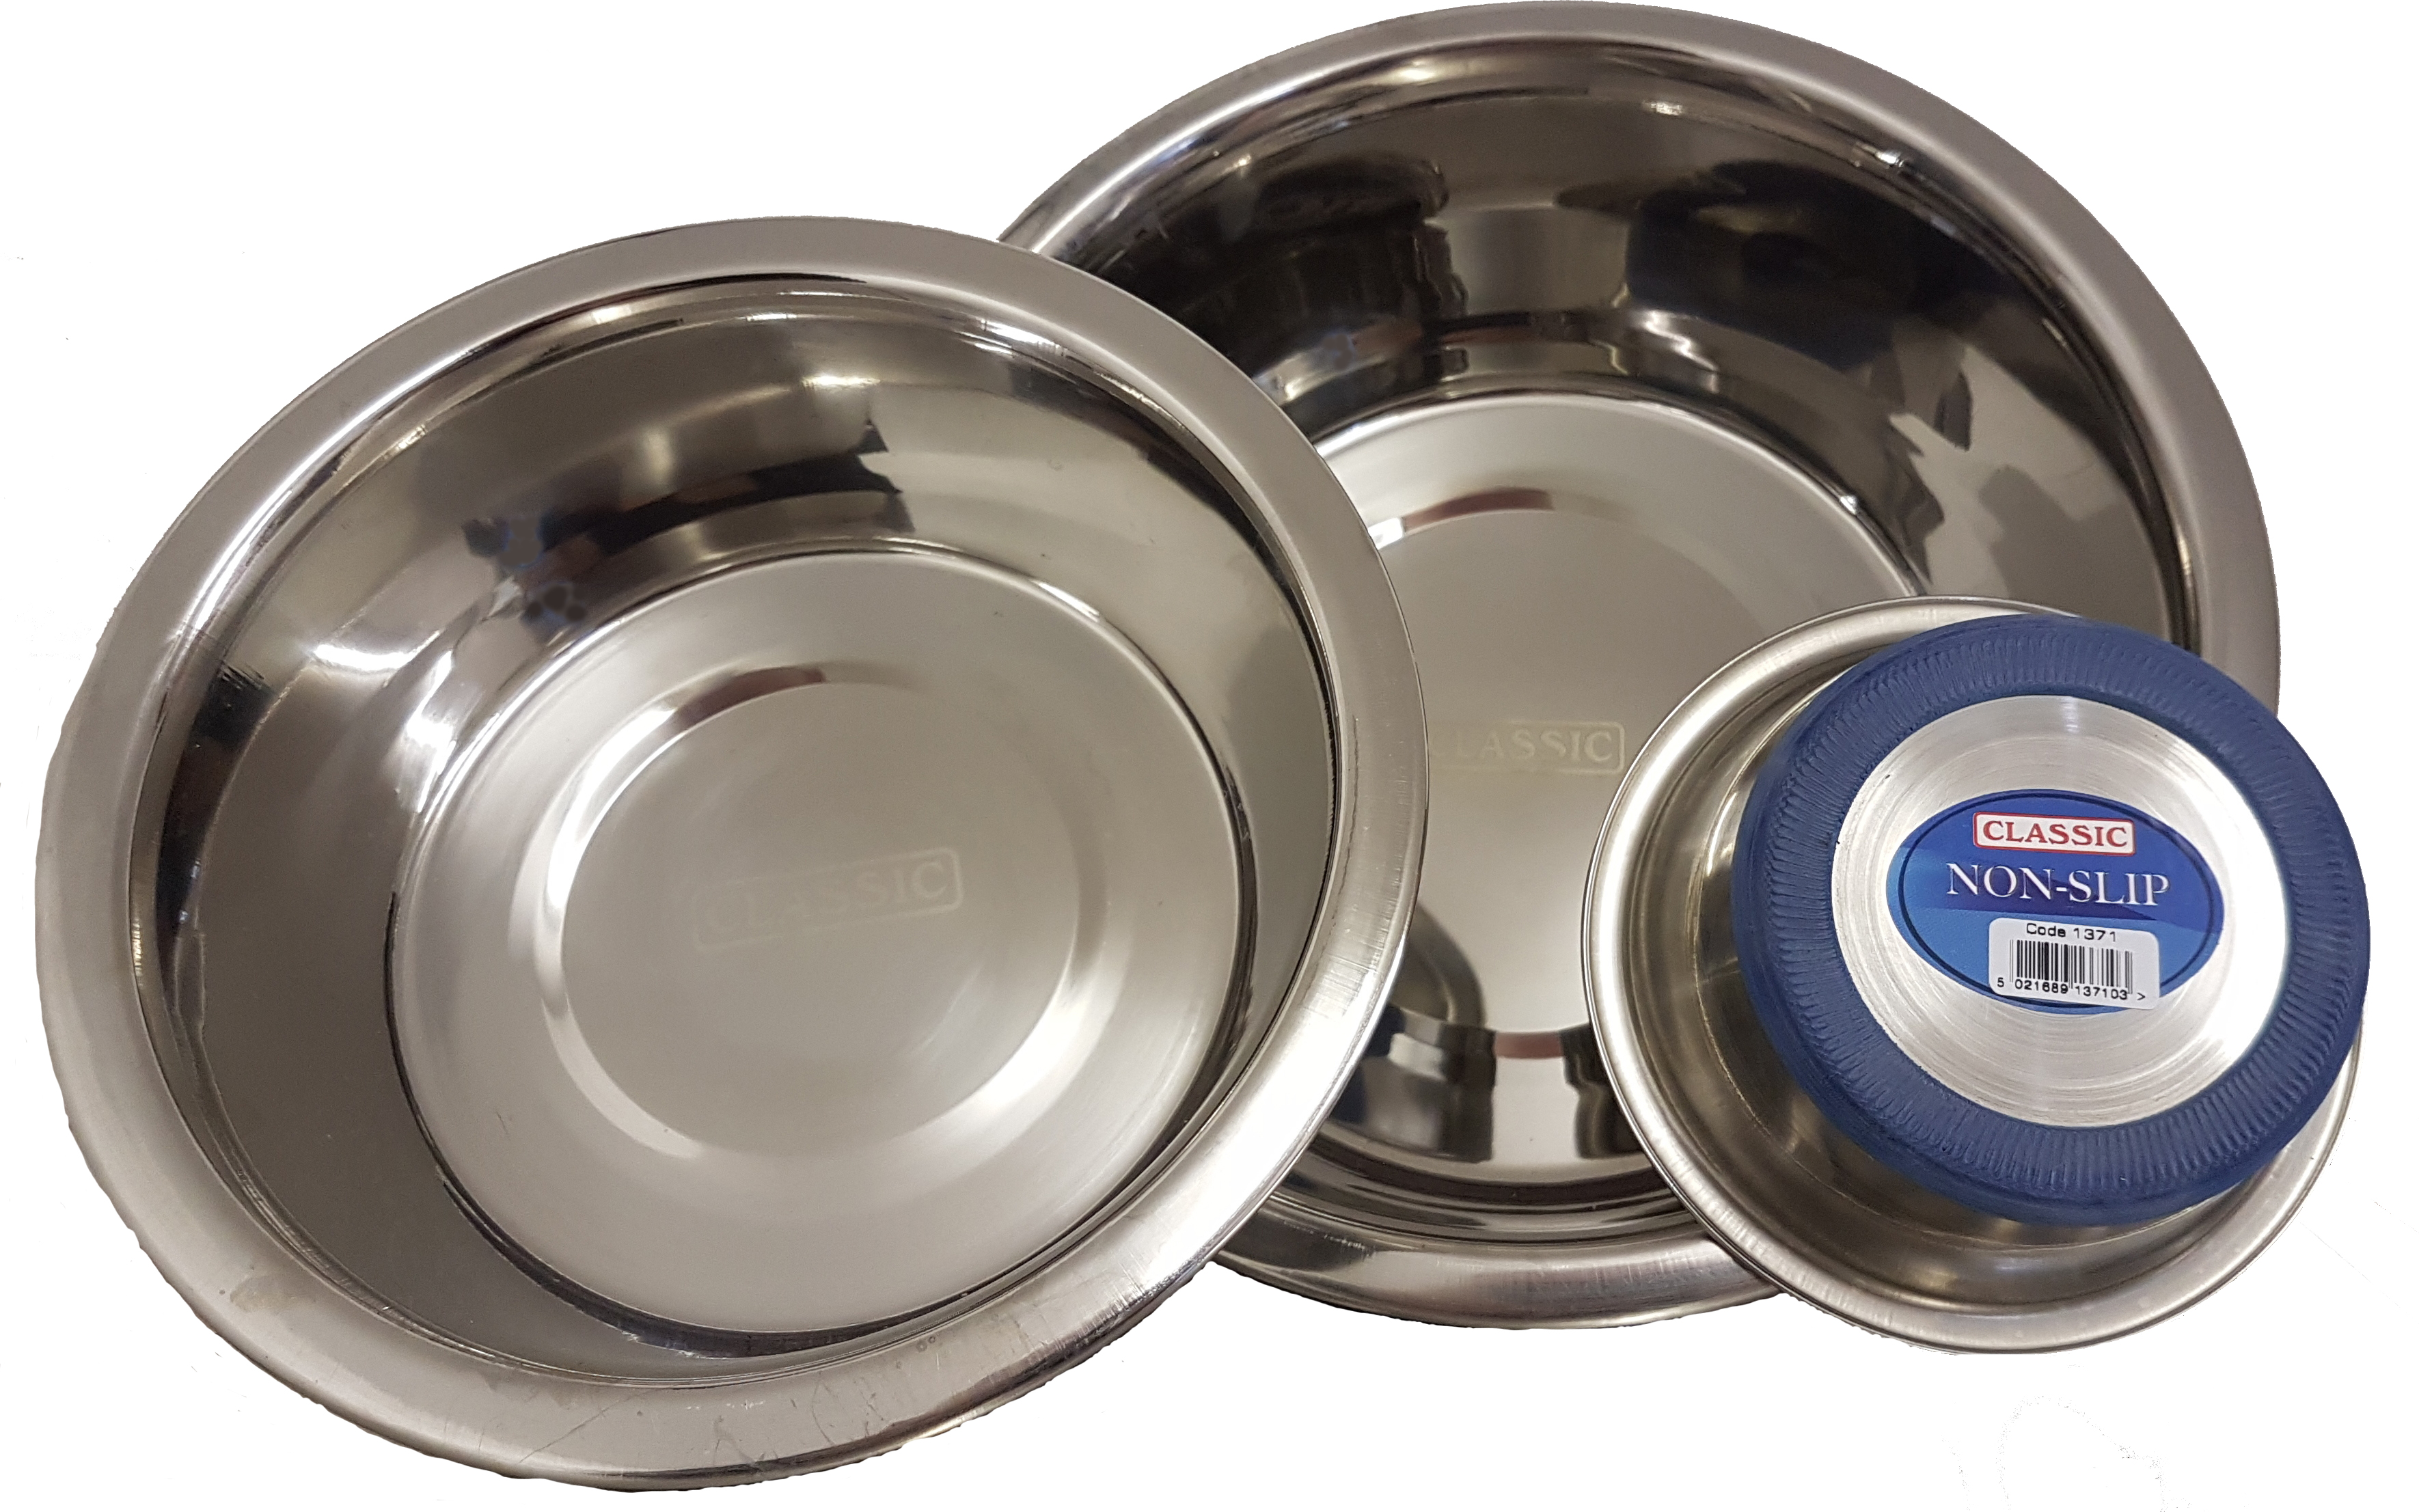 Classic Stainless Steel Bowl 135mm